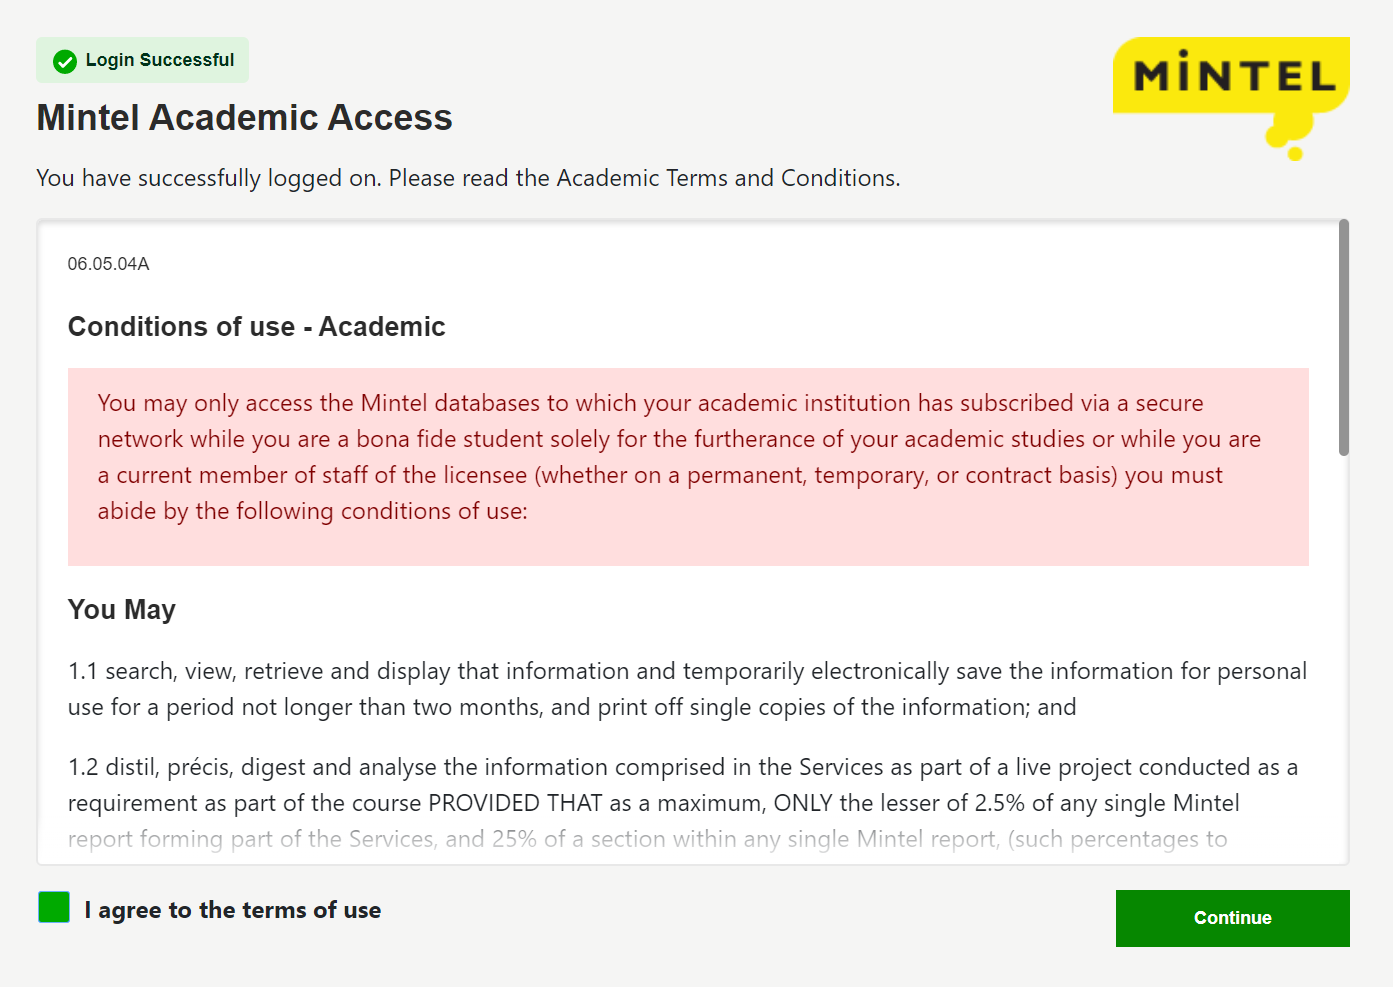 Mintel terms and conditions of use